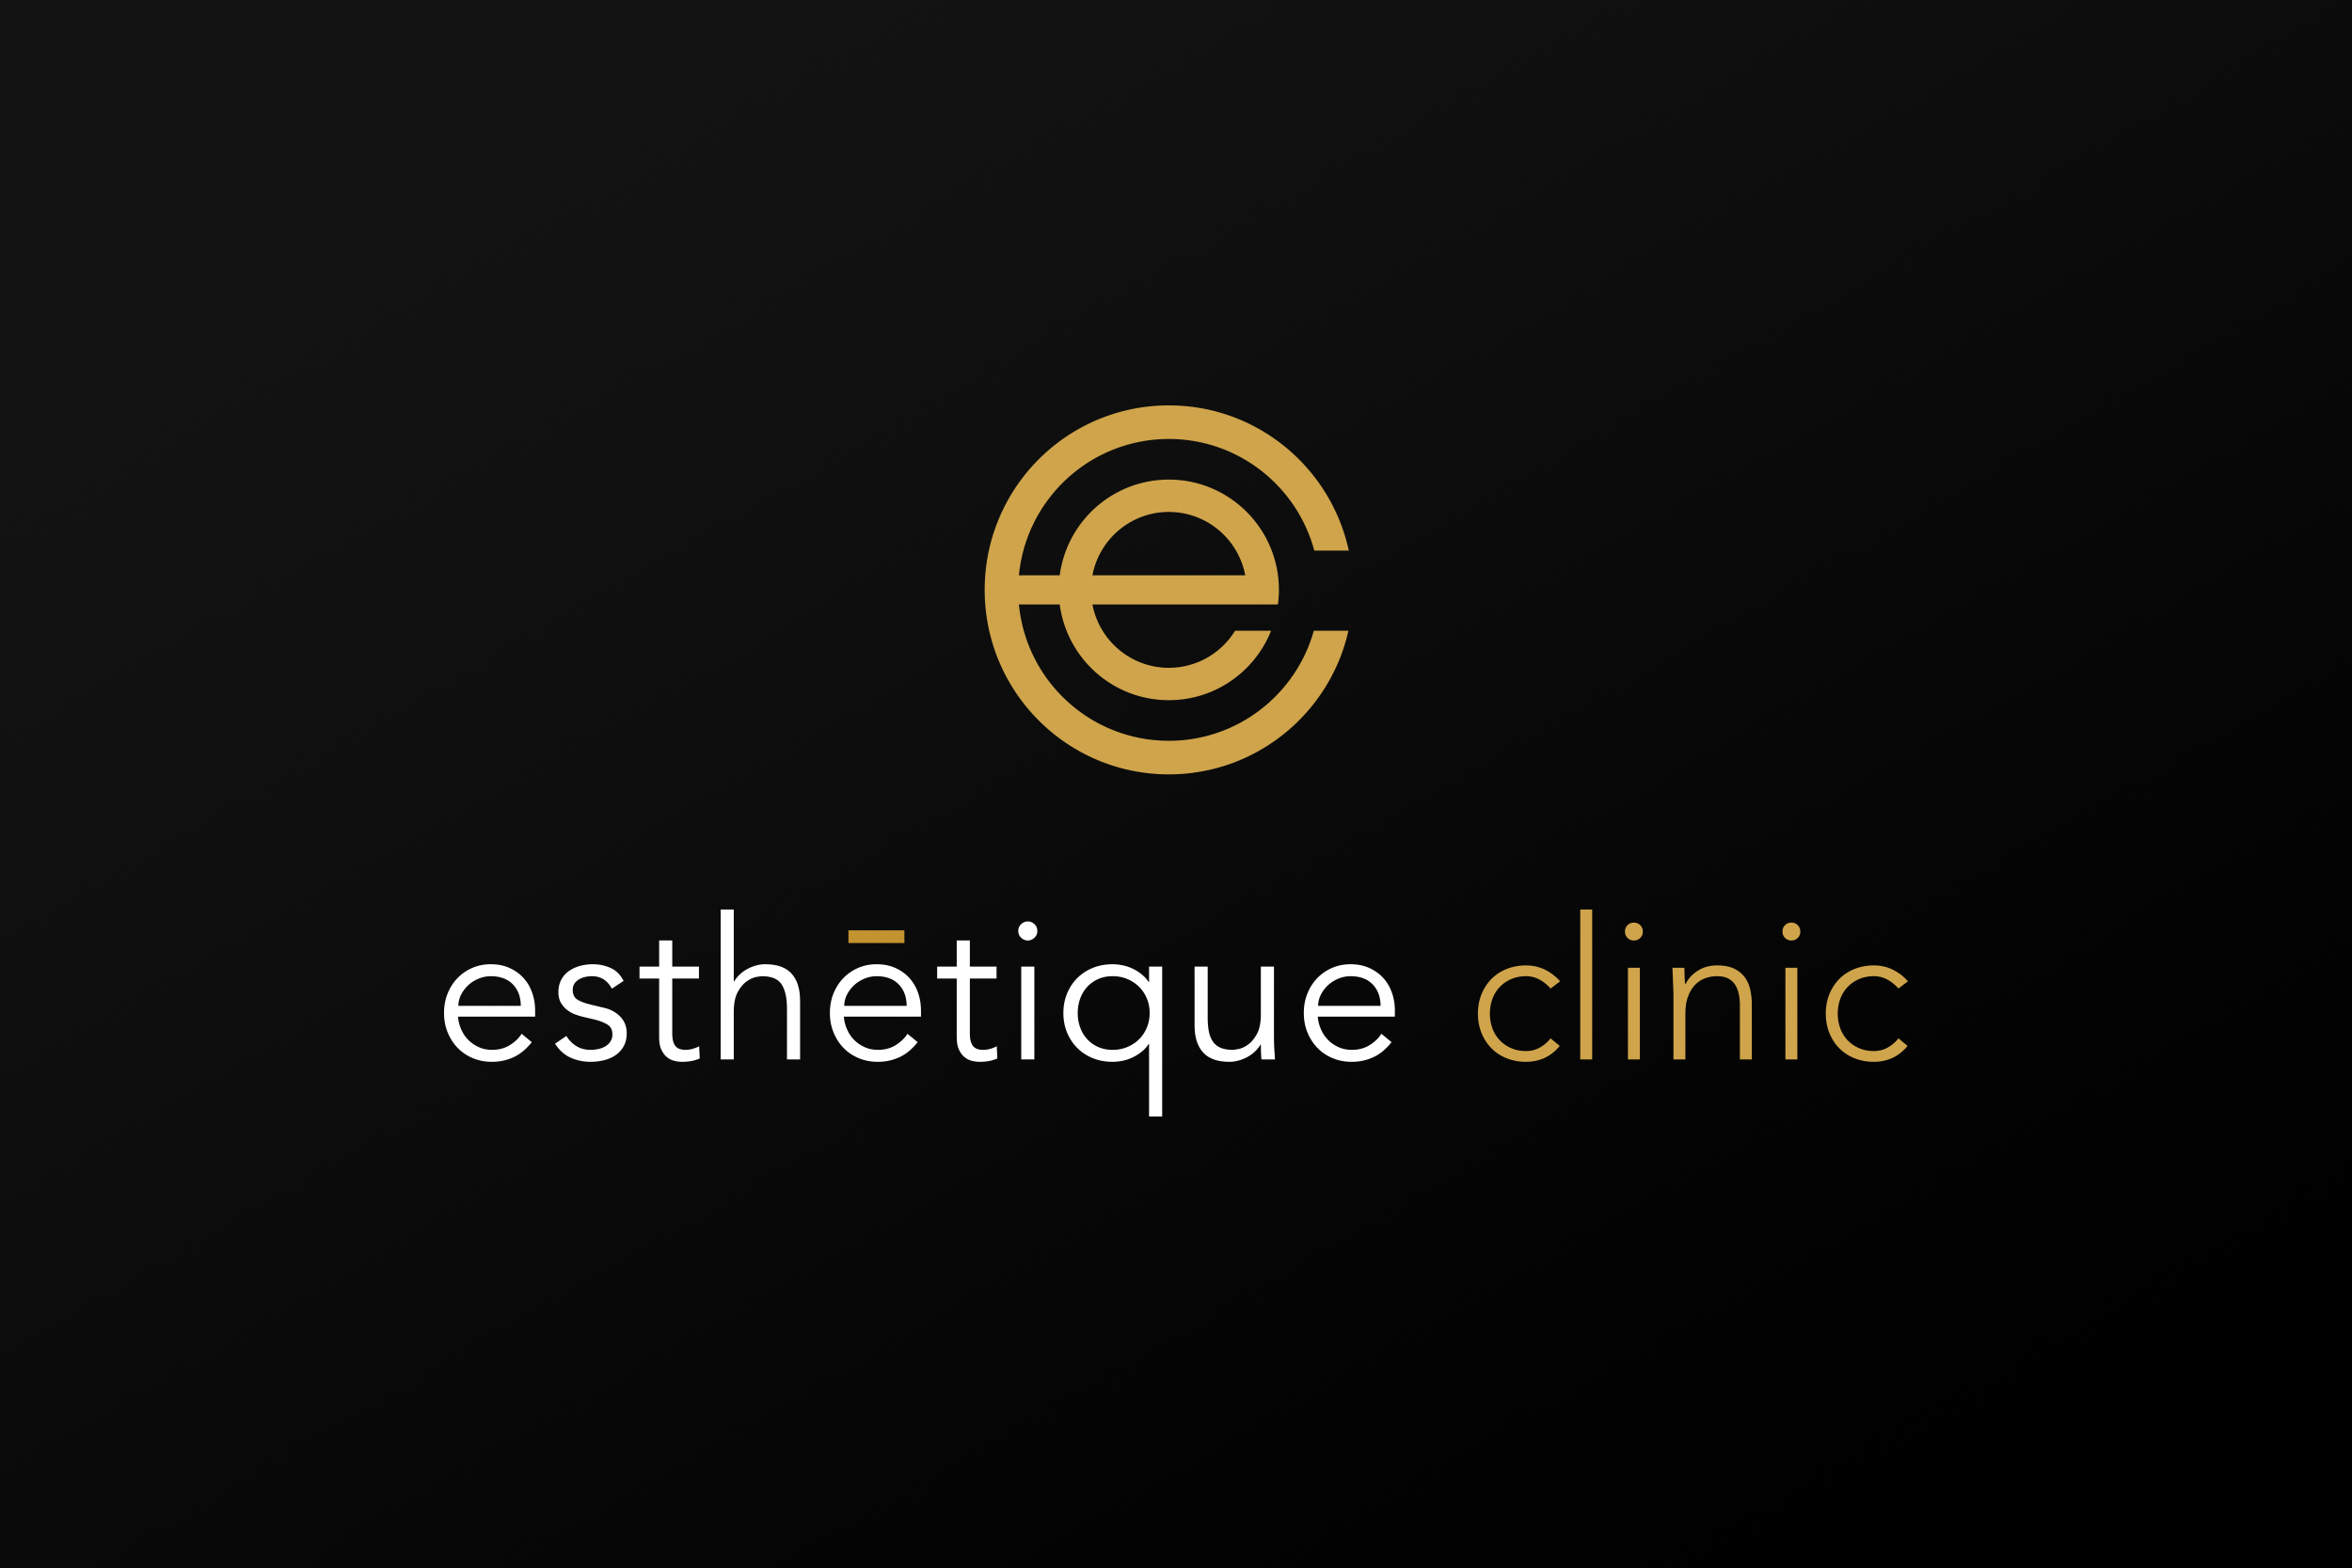 esthetique clinic logo REV.jpg